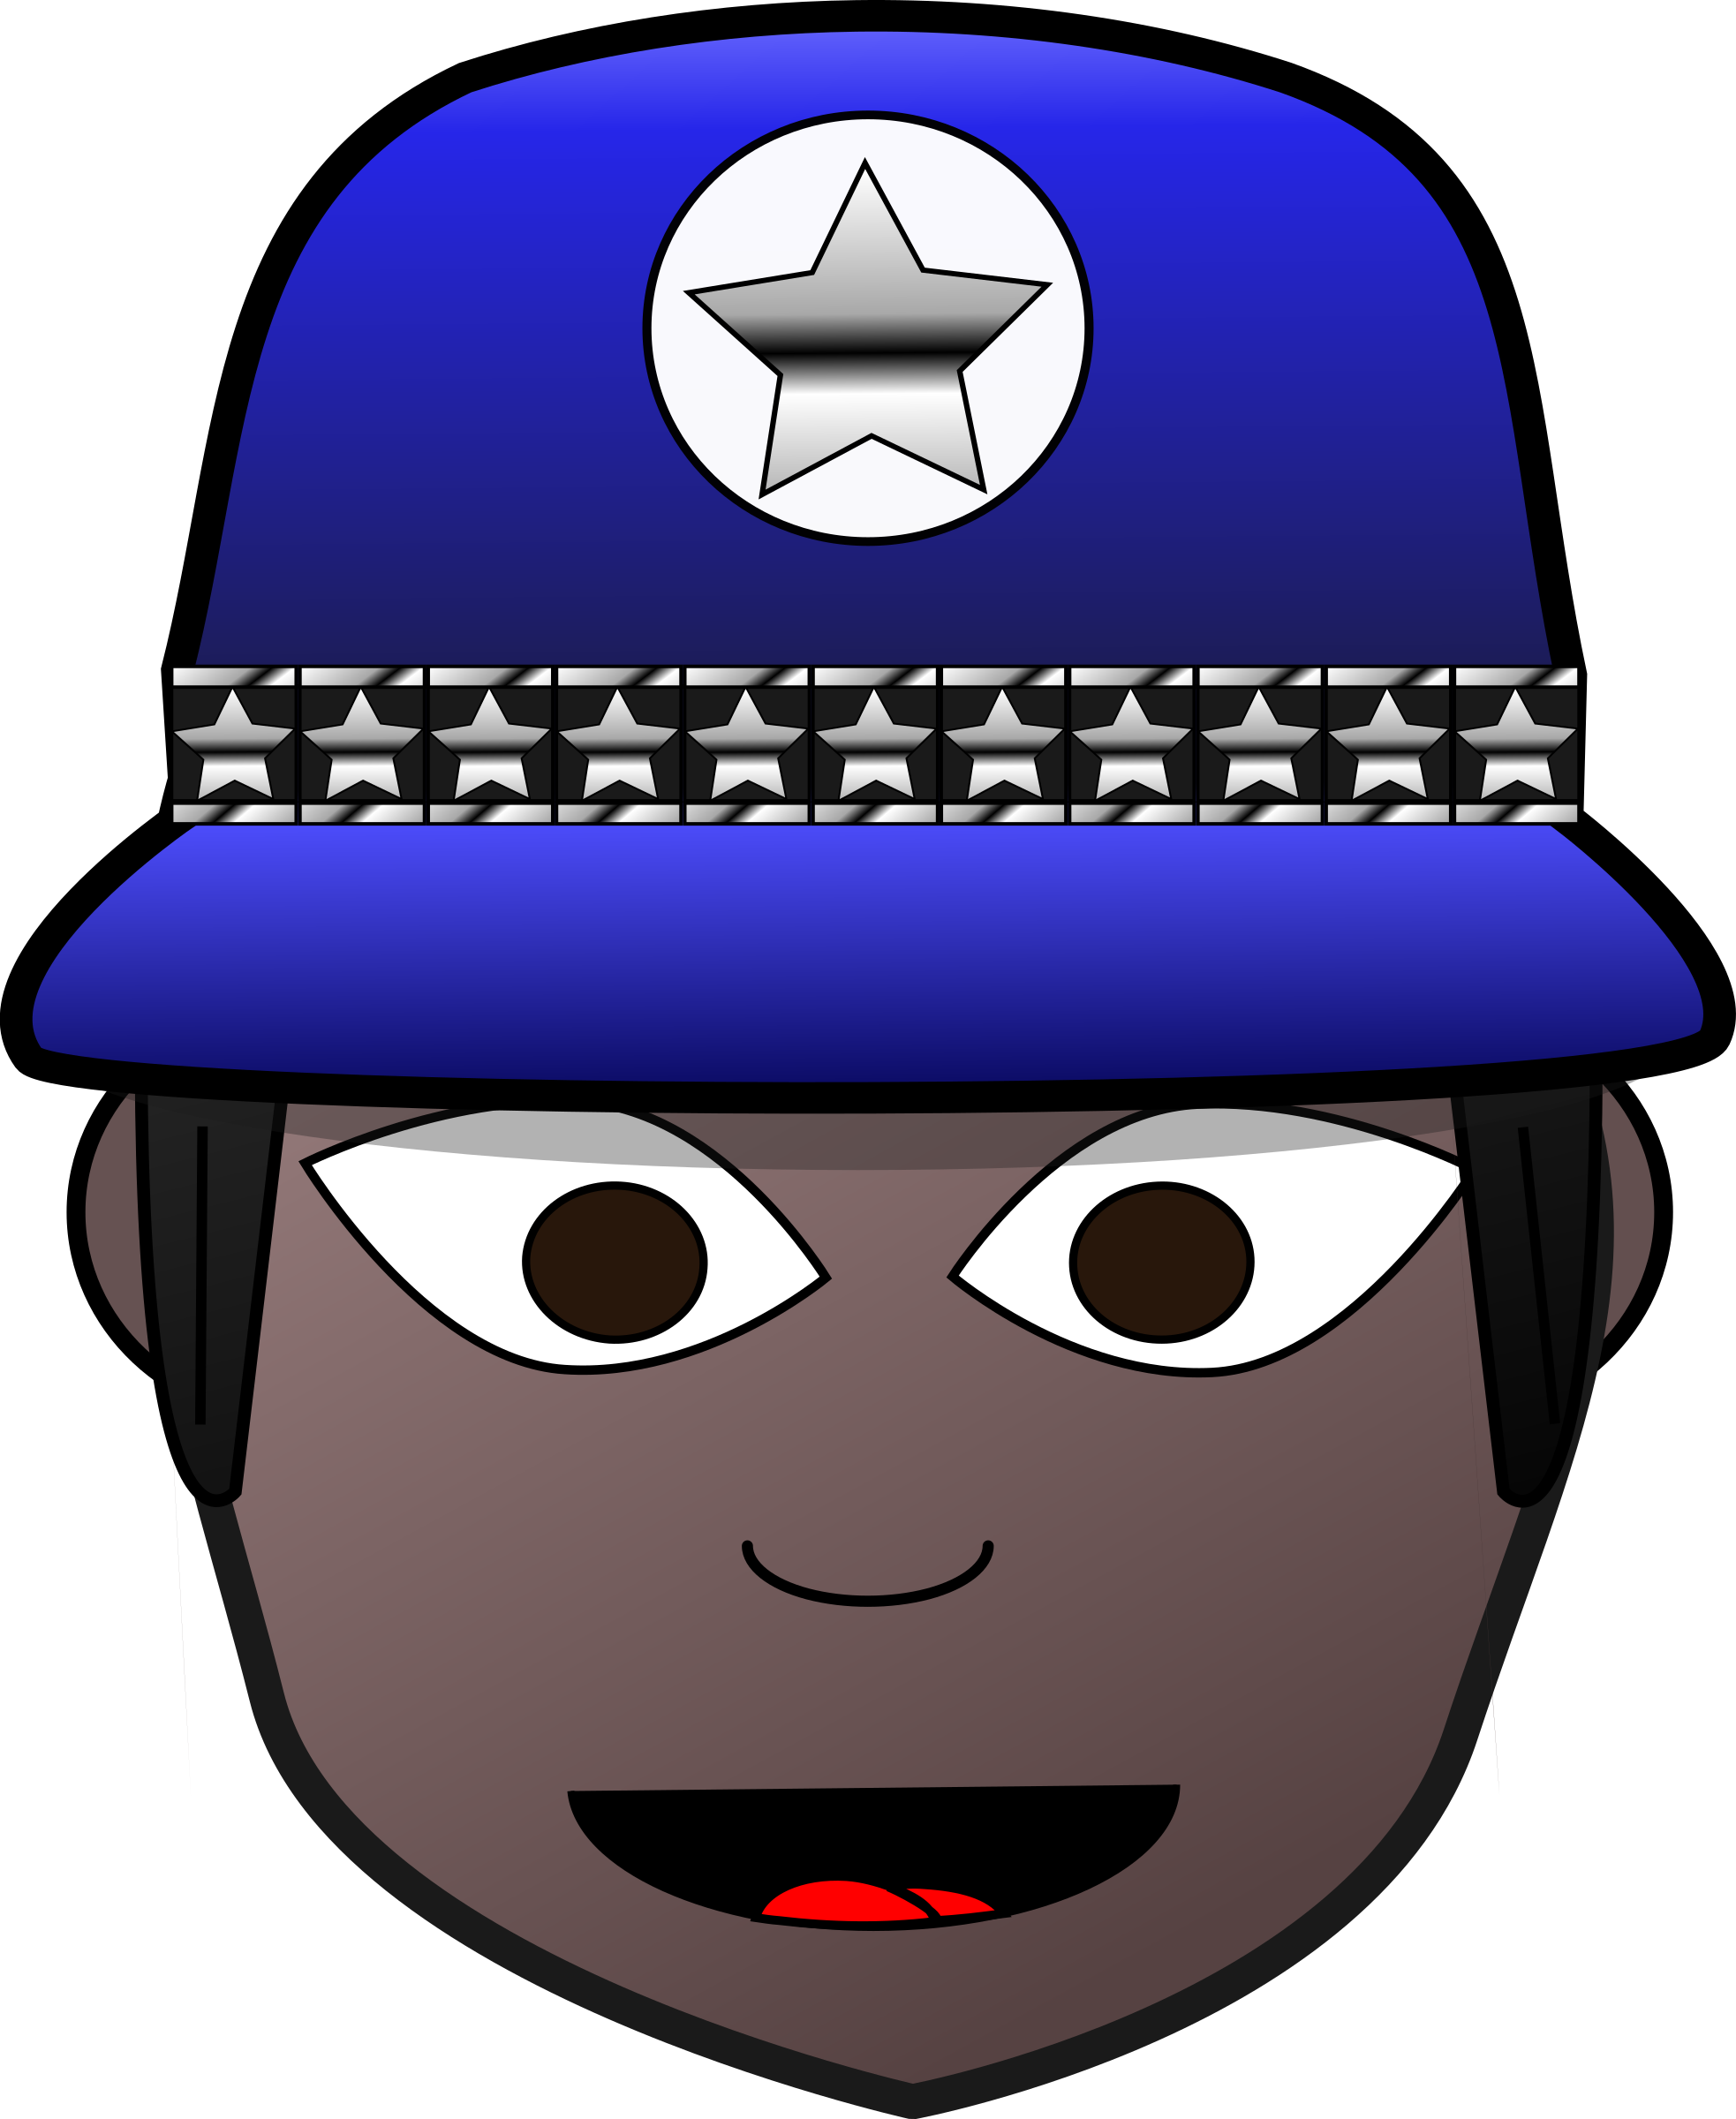 Hats clipart police, Hats police Transparent FREE for.